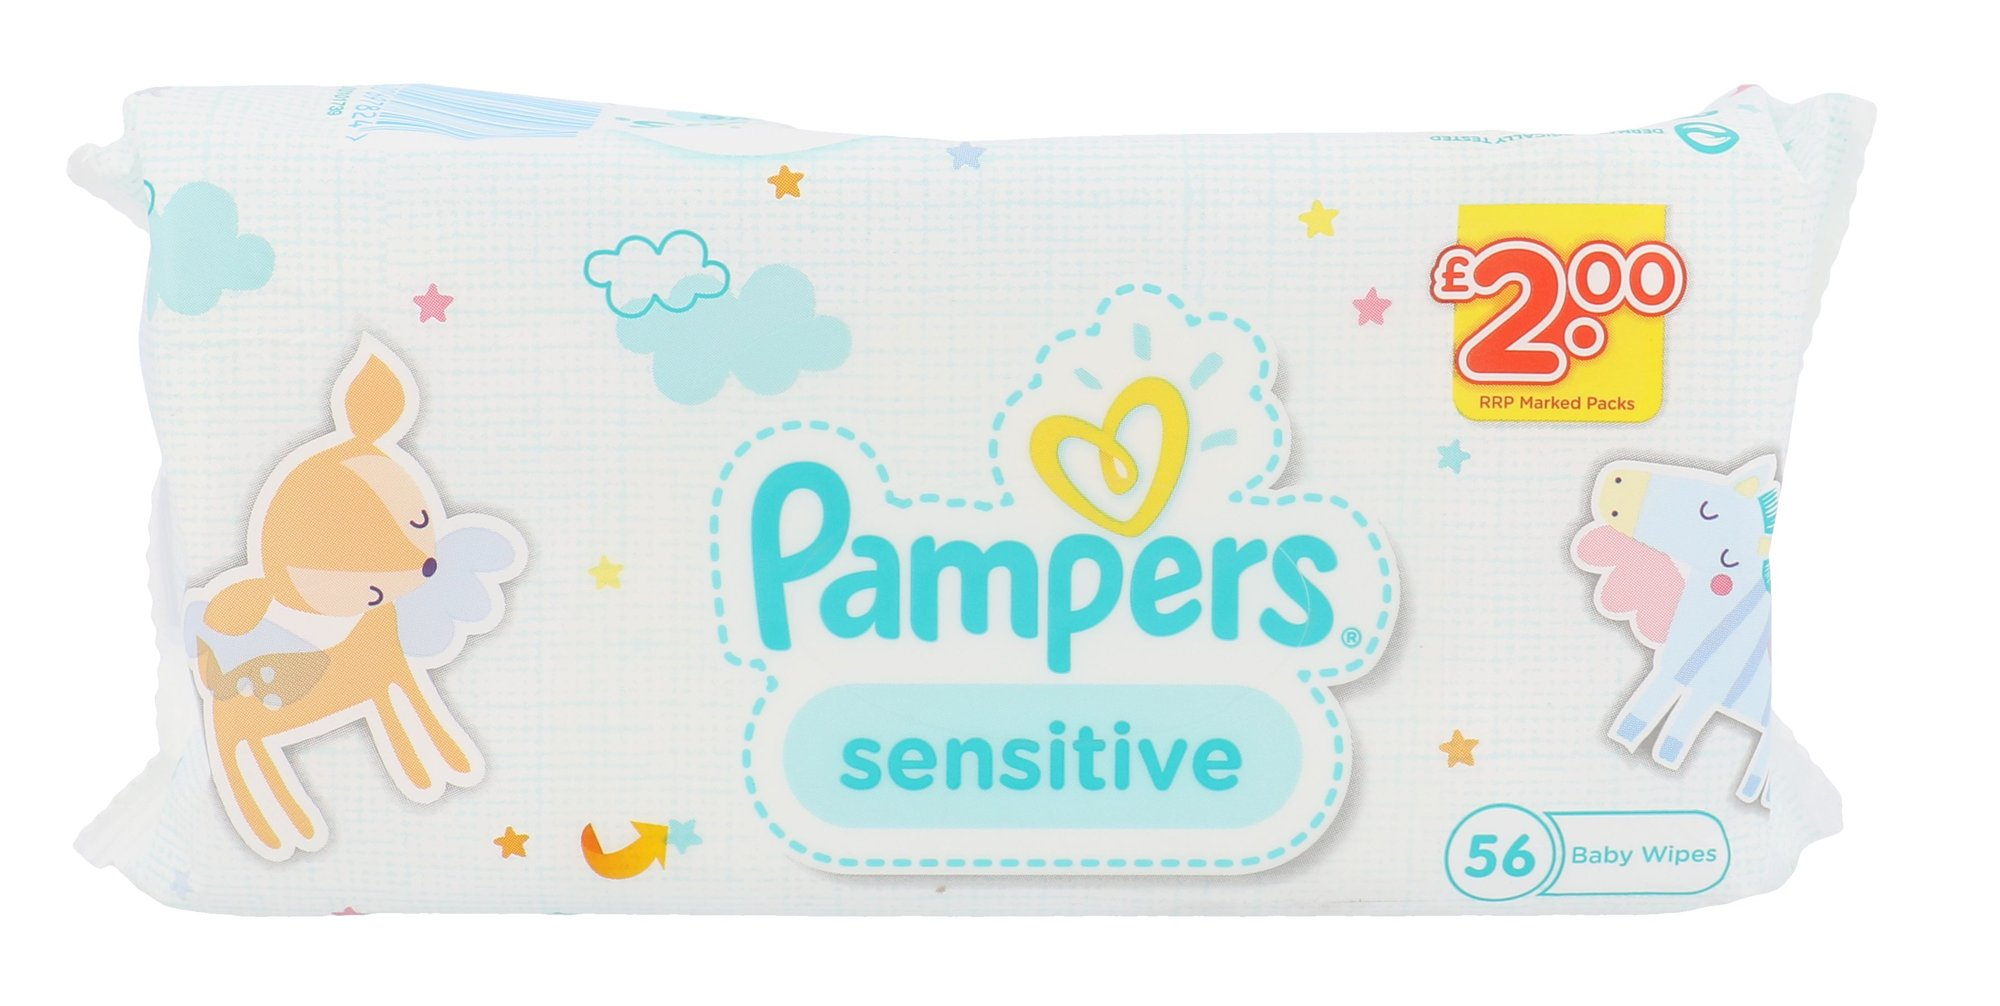 Pampers Baby Wipes Cosmetic 56ml  Sensitive